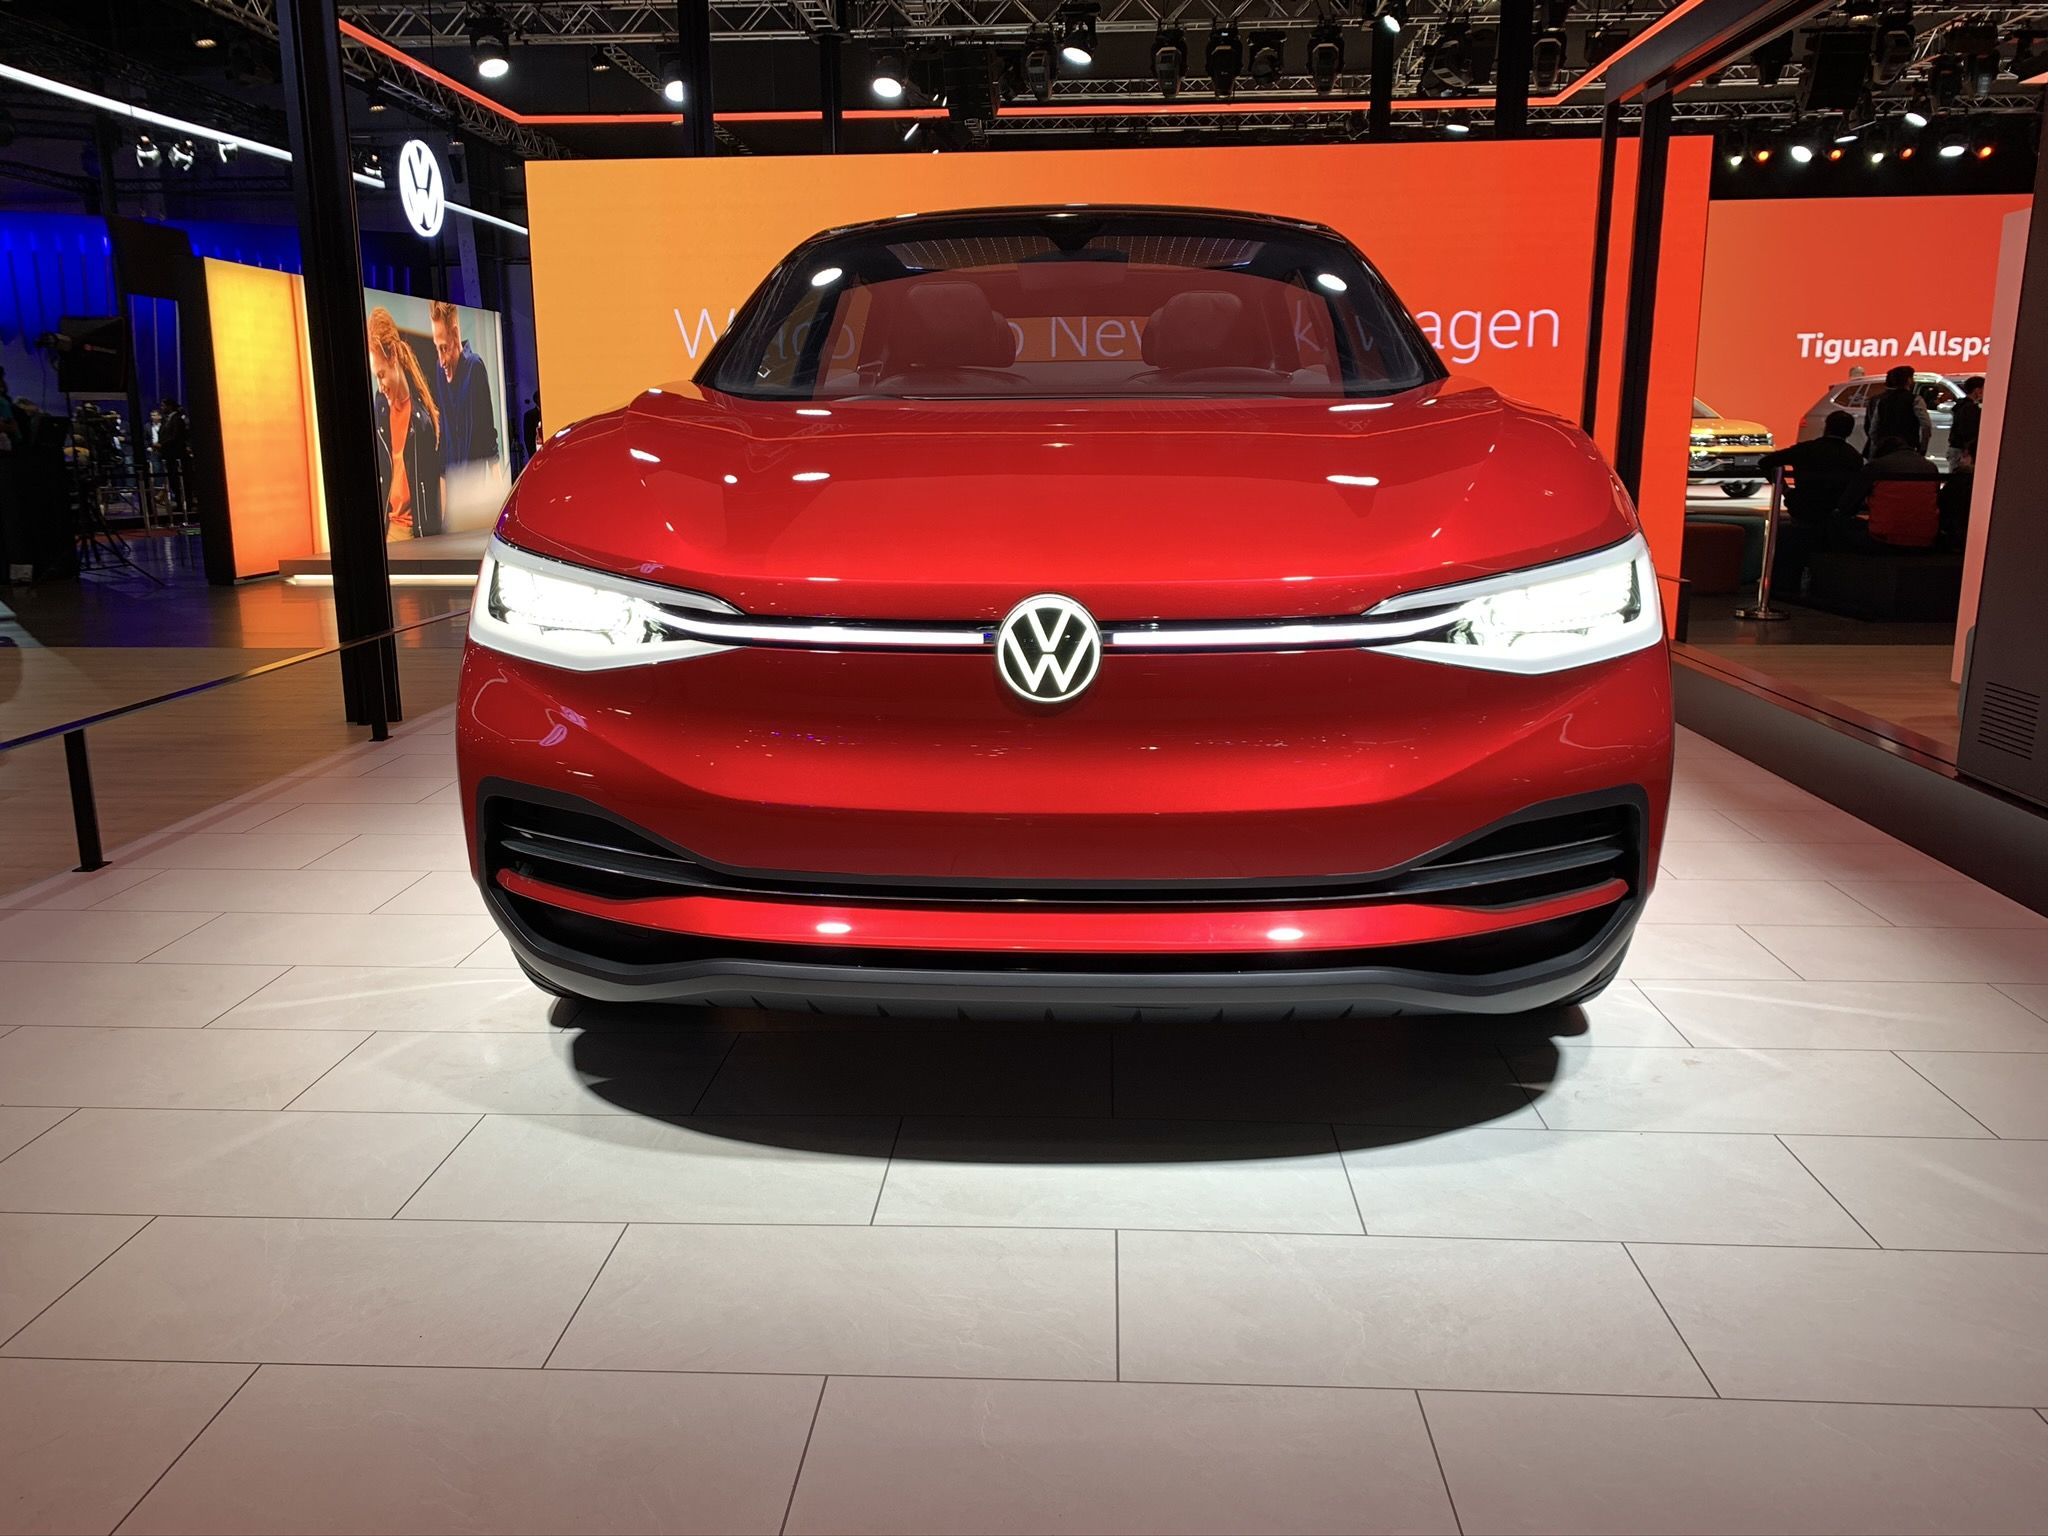 Volkswagen ID.CROZZ: The ID.CROZZ is a cross of four door coupe and SUV with an electric drivetrain delivering power of 225kw with a top speed of 180km/hr. It is based on the company's modular electric drive matrix (MEB) platform.